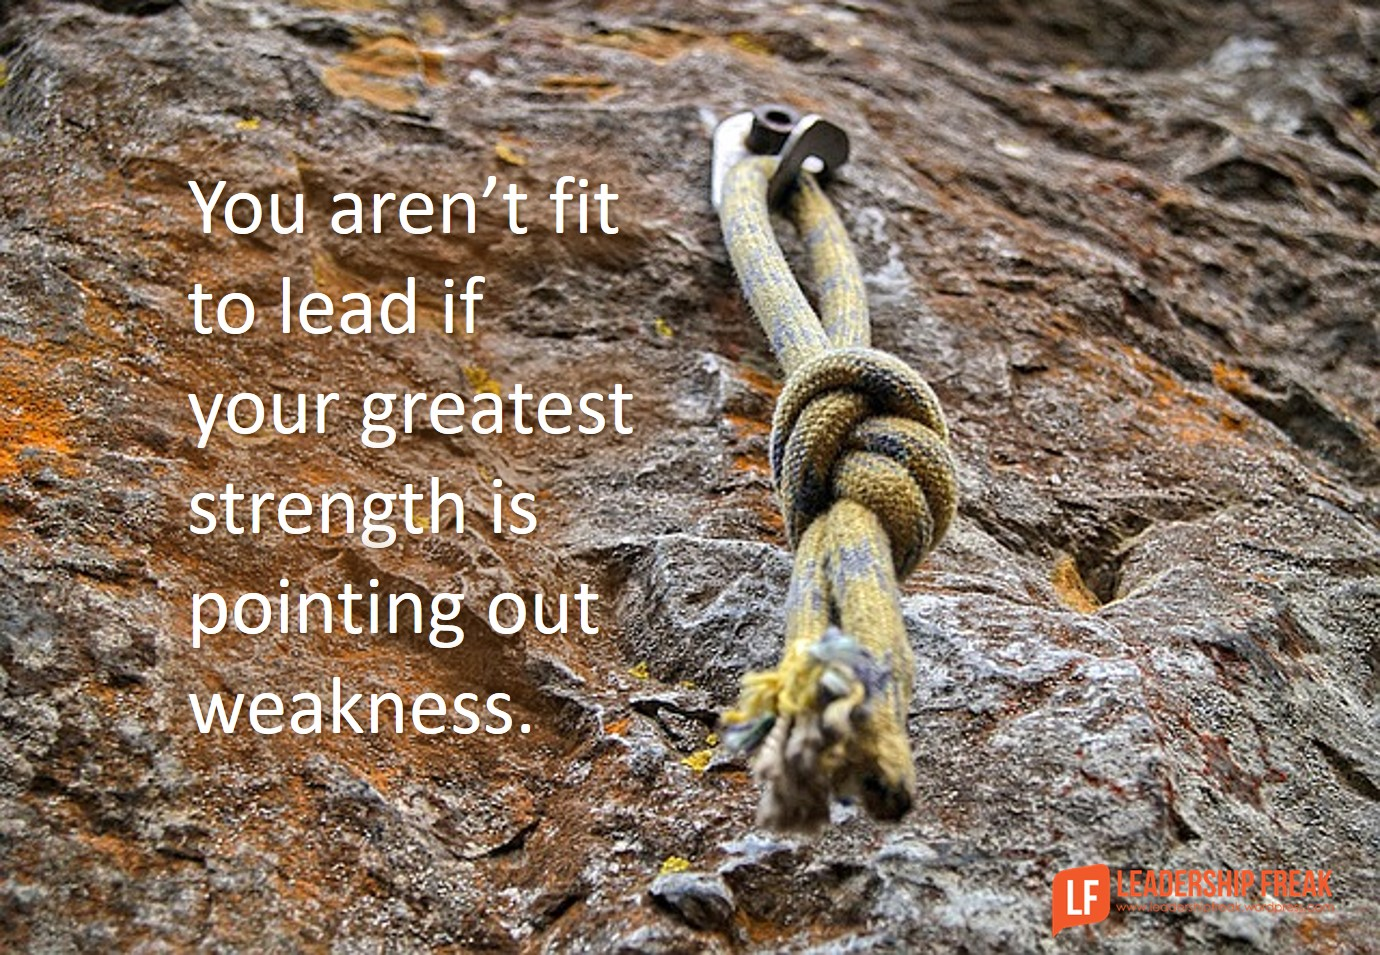 you aren t fit to lead if your greatest strength is seeing you arent fit to lead if your greatest